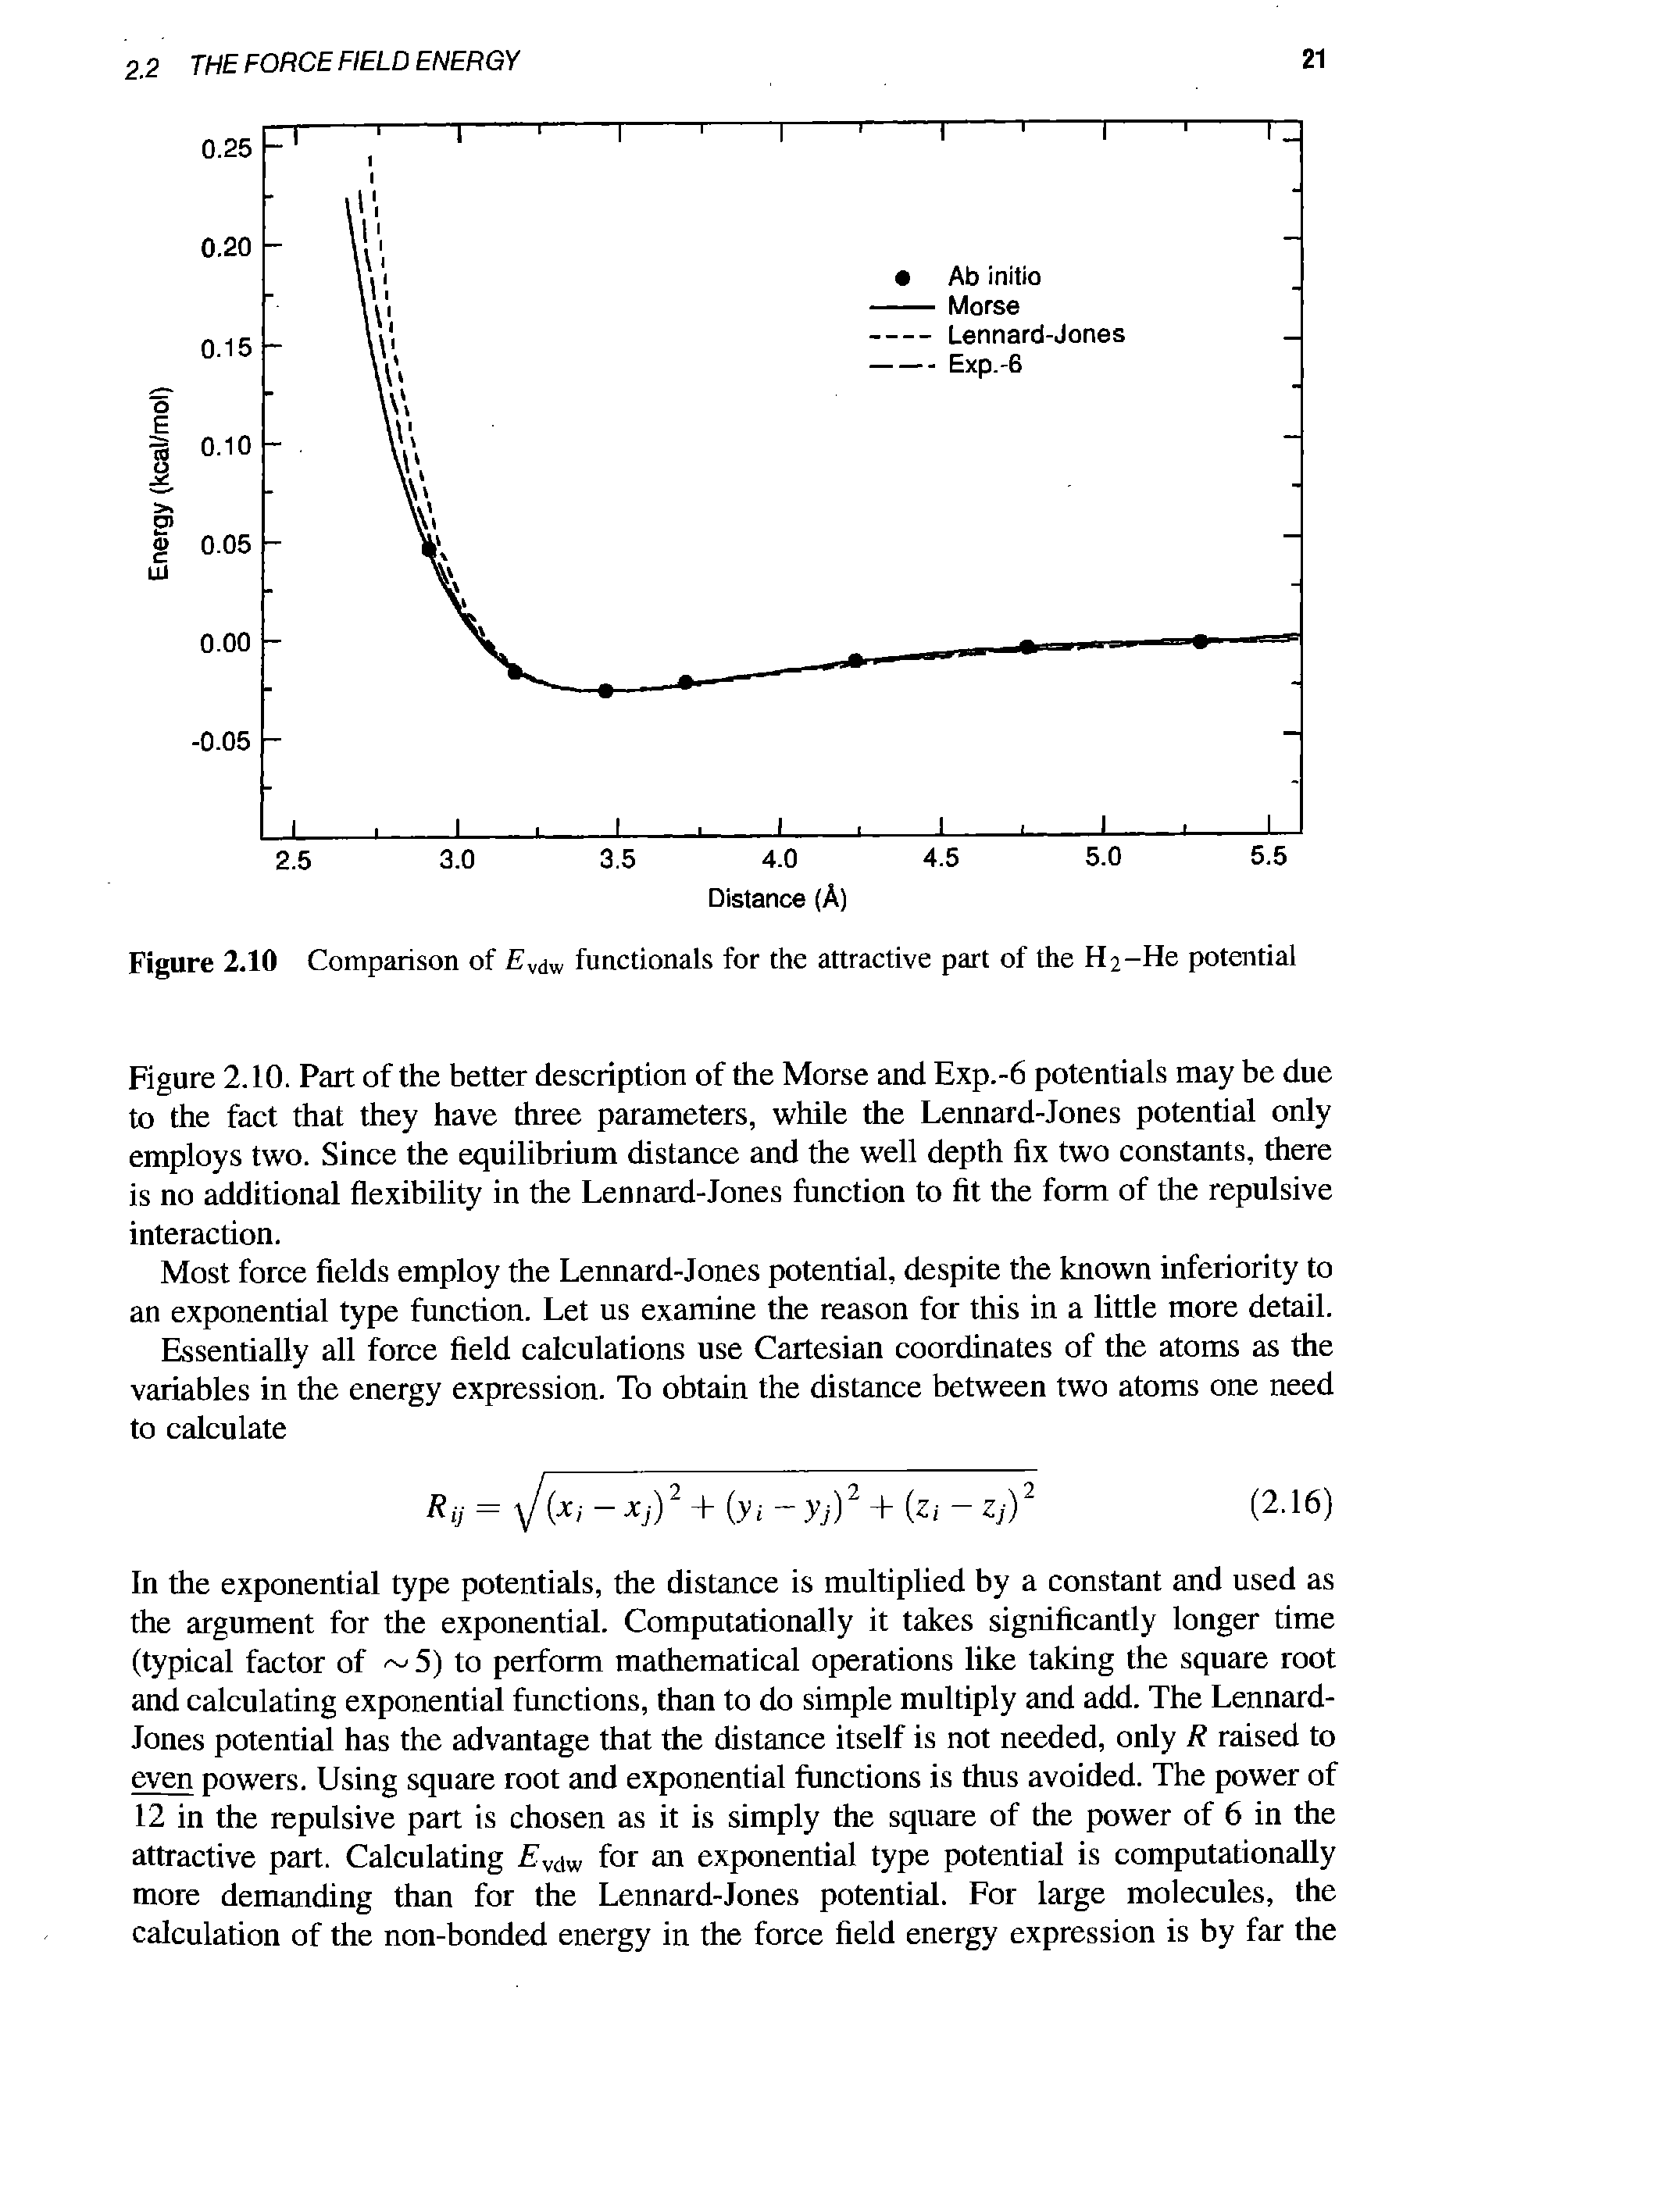 "Figure 2.10. Part of the better description of the Morse and Exp.-6 potentials may be due to the fact that they have <a href=""/info/three_parameter"">three parameters</a>, while the <a href=""/info/lennard_jones_potential"">Lennard-Jones potential</a> only employs two. Since the <a href=""/info/equilibrium_distances_for_ch3_and"">equilibrium distance</a> and the well depth fix two constants, there is no additional flexibility in the <a href=""/info/lennard_jones_function"">Lennard-Jones function</a> to fit the form of the repulsive interaction."